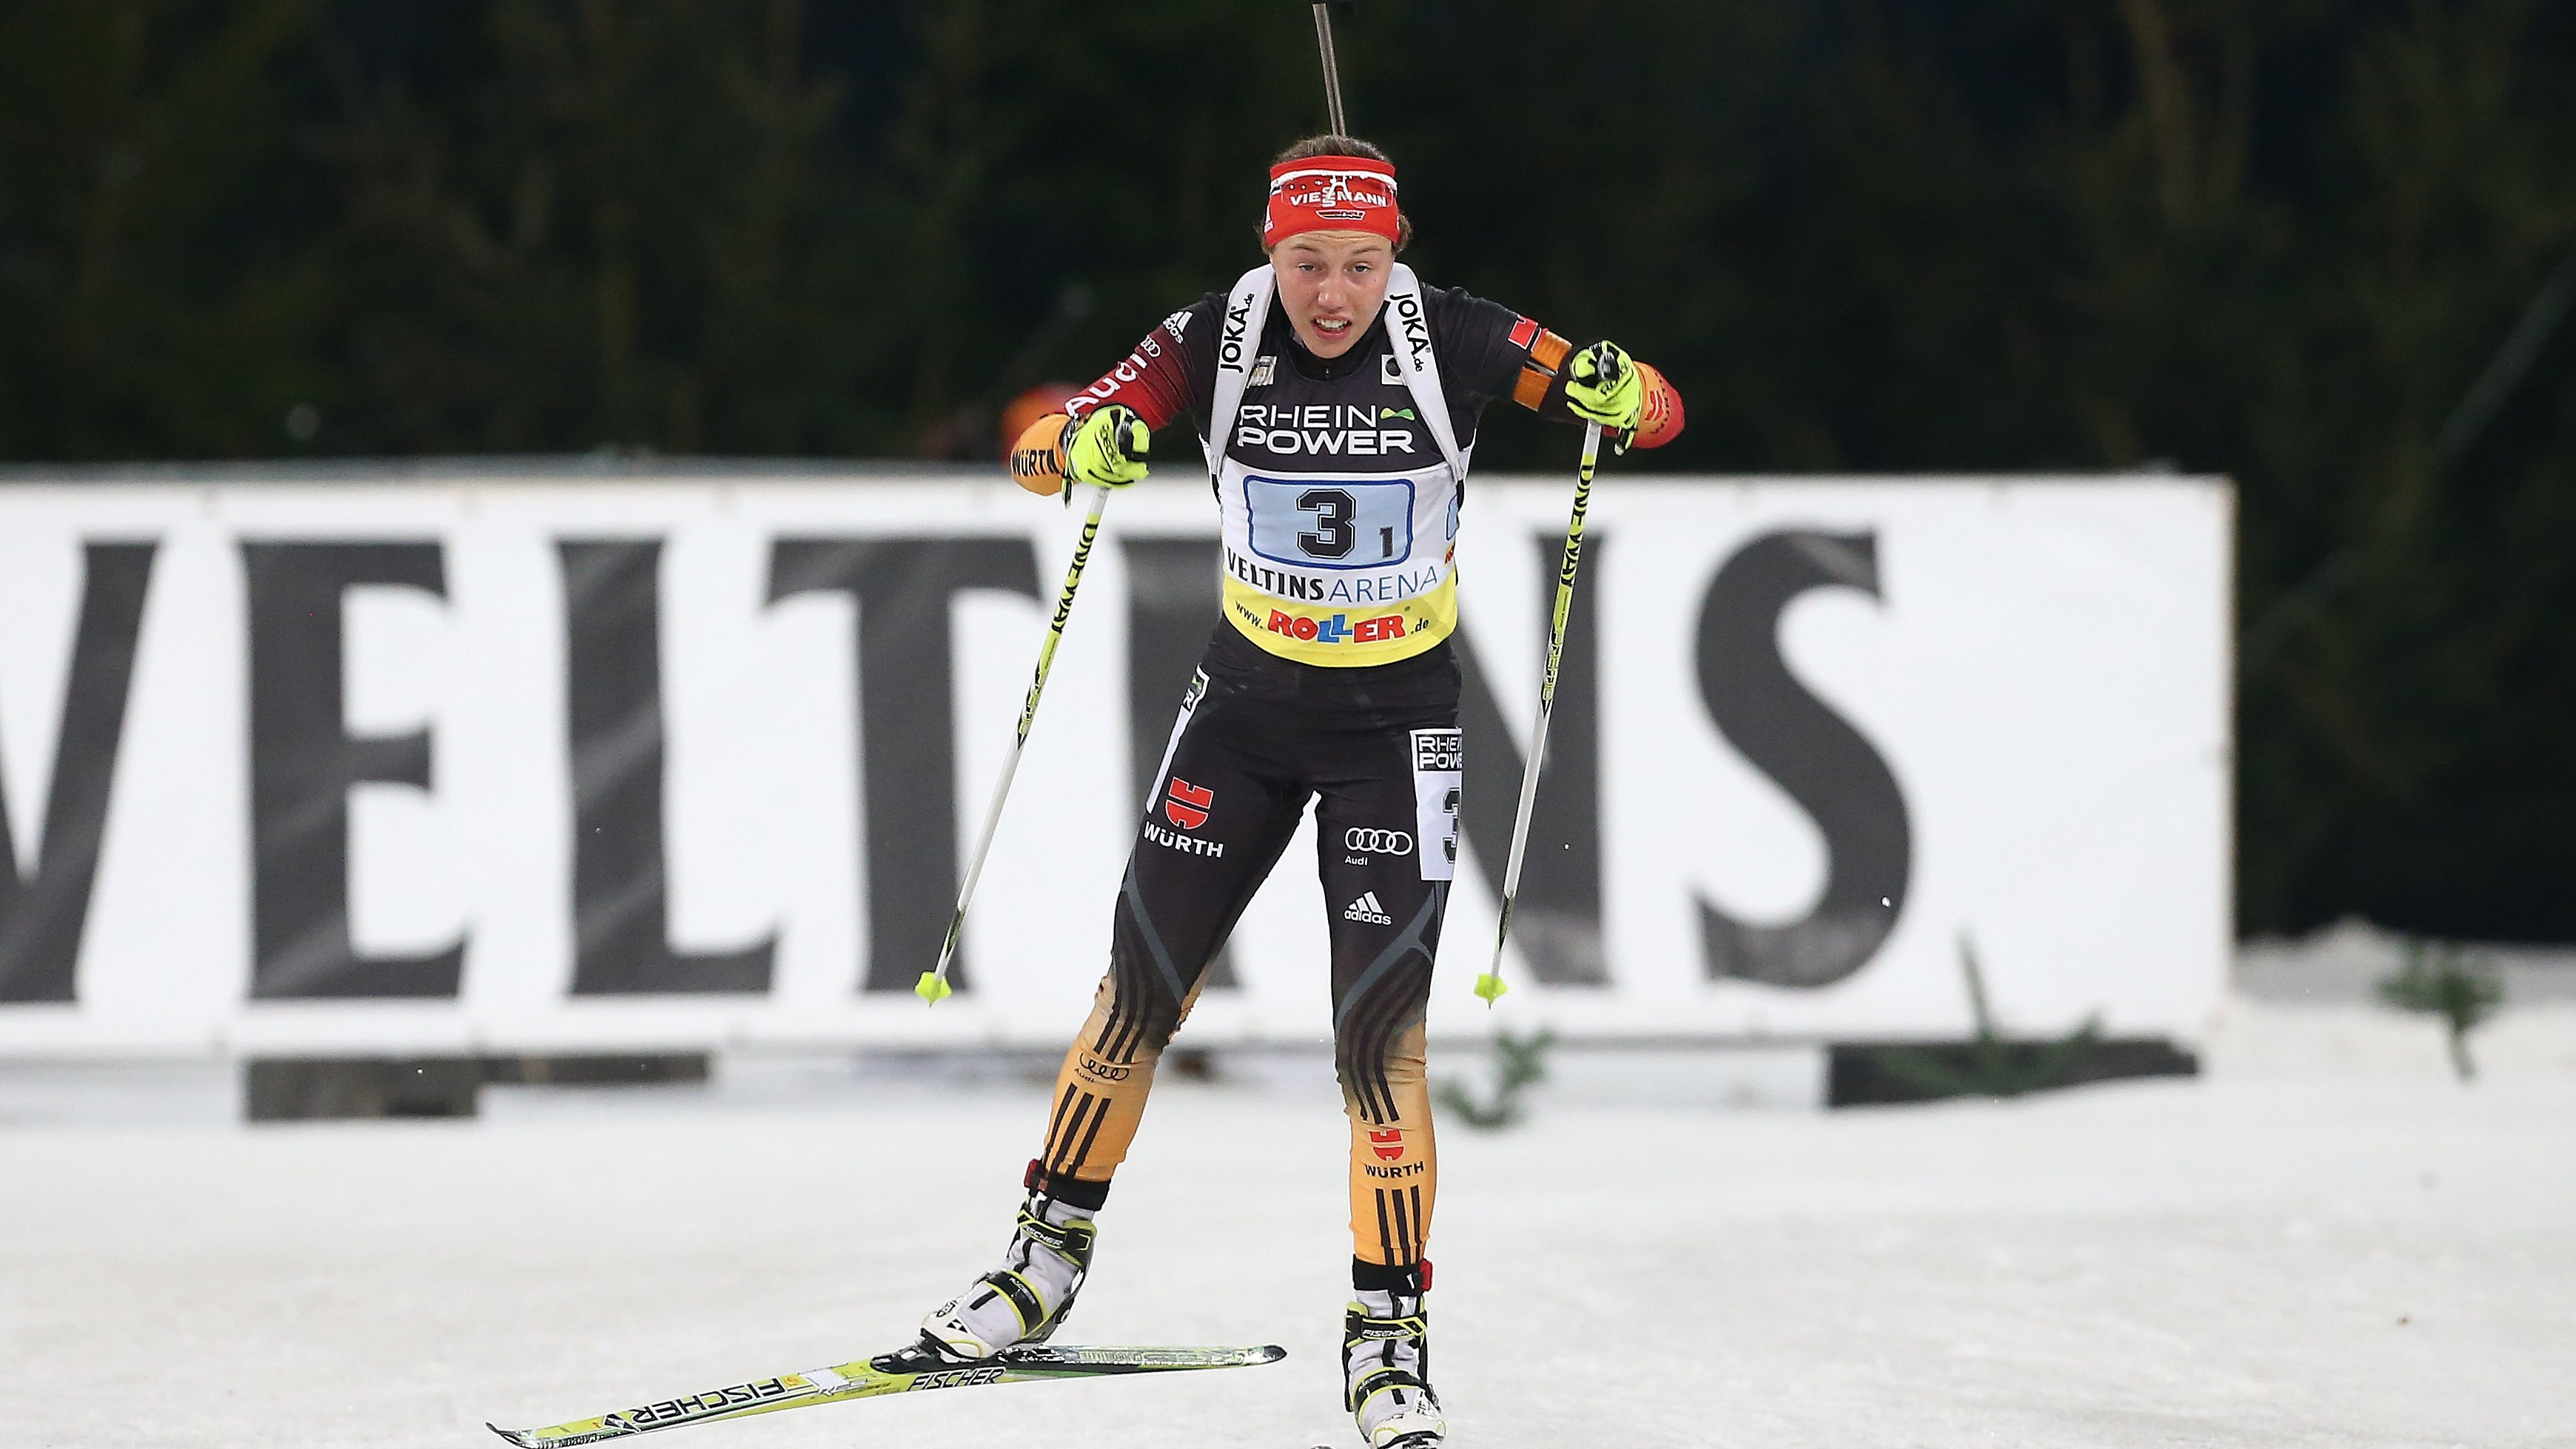 Biathlon World Team Challenge 2013